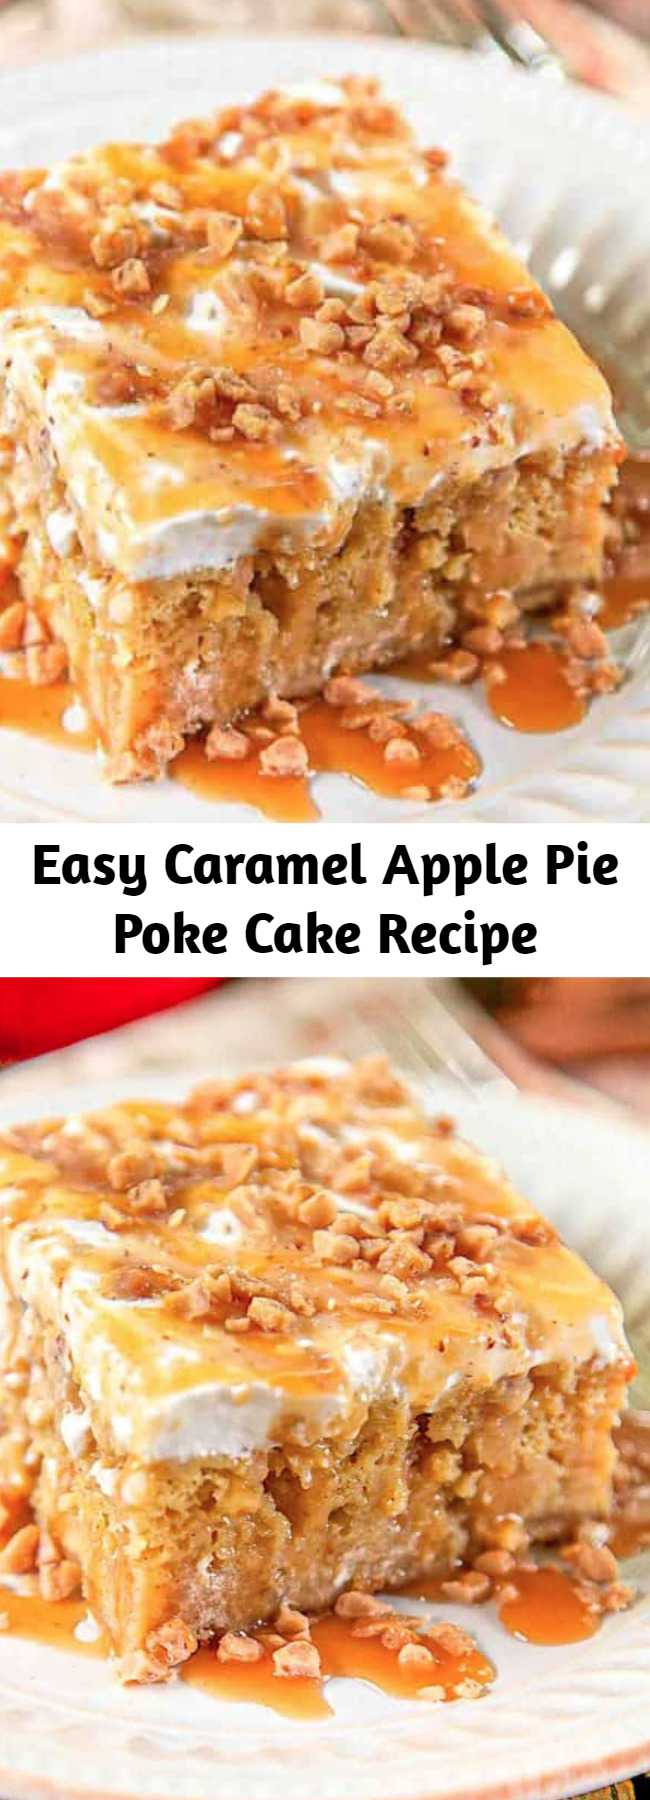 Easy Caramel Apple Pie Poke Cake Recipe - Apple cake soaked in caramel sauce topped with cool whip and toffee bits – AMAZING! Can make ahead of time and refrigerate. It gets better as it sits in the fridge. Super delicious cake!